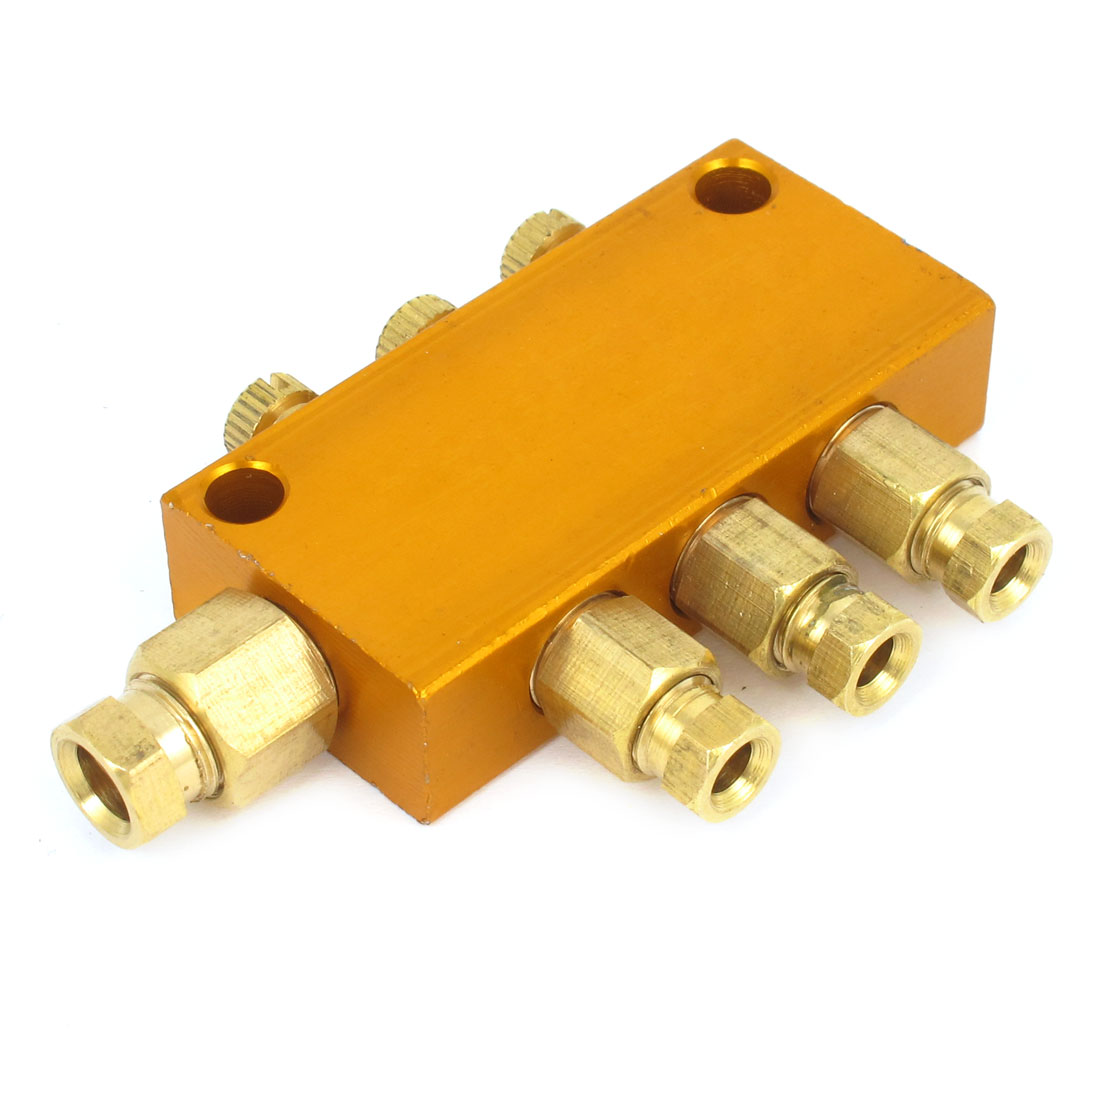 1-Inlet 3-Outlet Brass Adjustable Hydraulic Oil Distributor Regulating Manifold Block